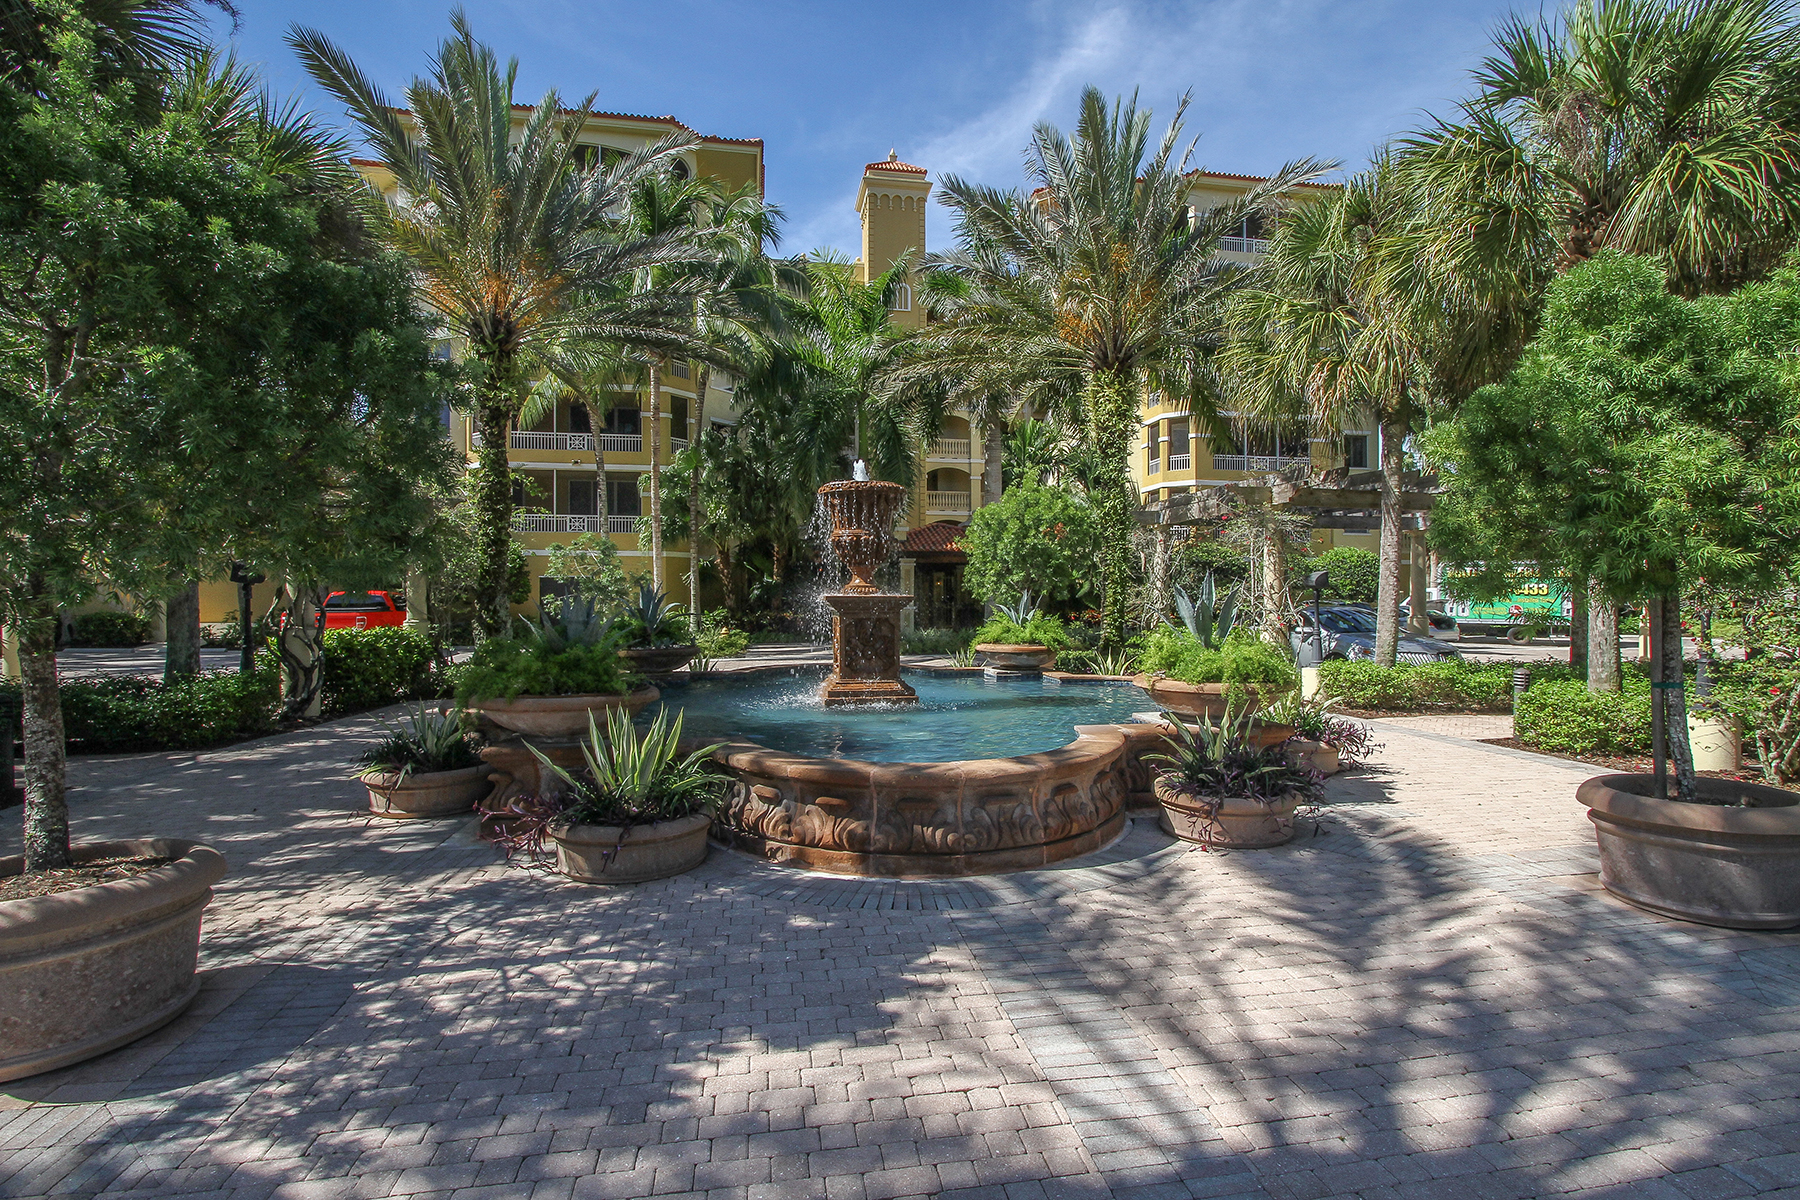 Condominium for Rent at TIBURON - VENTANA 2738 Tiburon Blvd E B-403, Naples, Florida 34109 United States